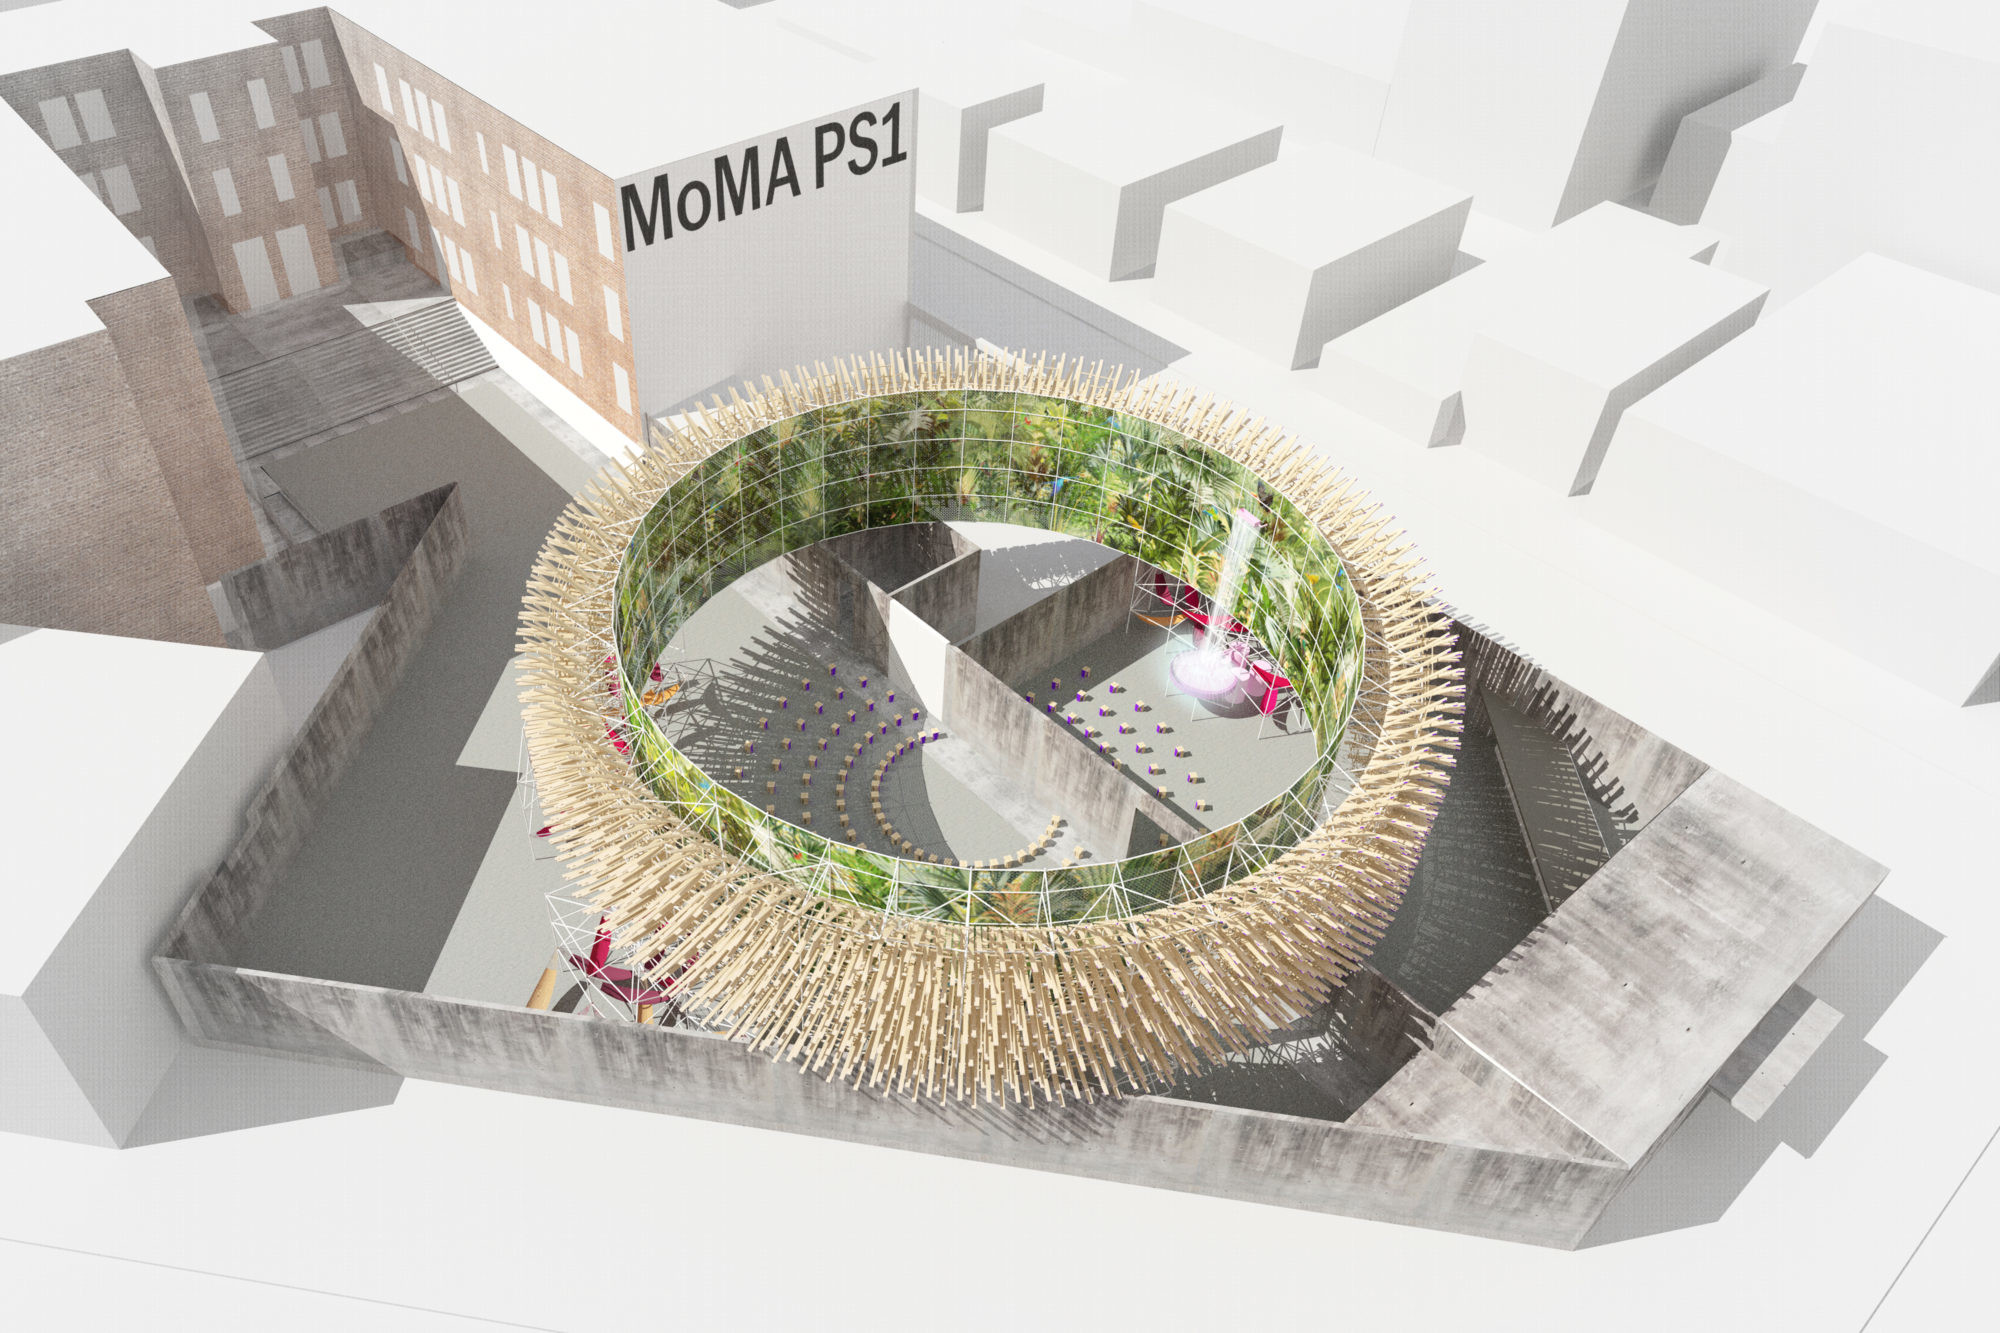 Hórama Rama by Pedro & Juana, winner of the 2019 Young Architects Program. Ana Paula Ruiz Galindo & Mecky Reuss. Mexico City, Mexico